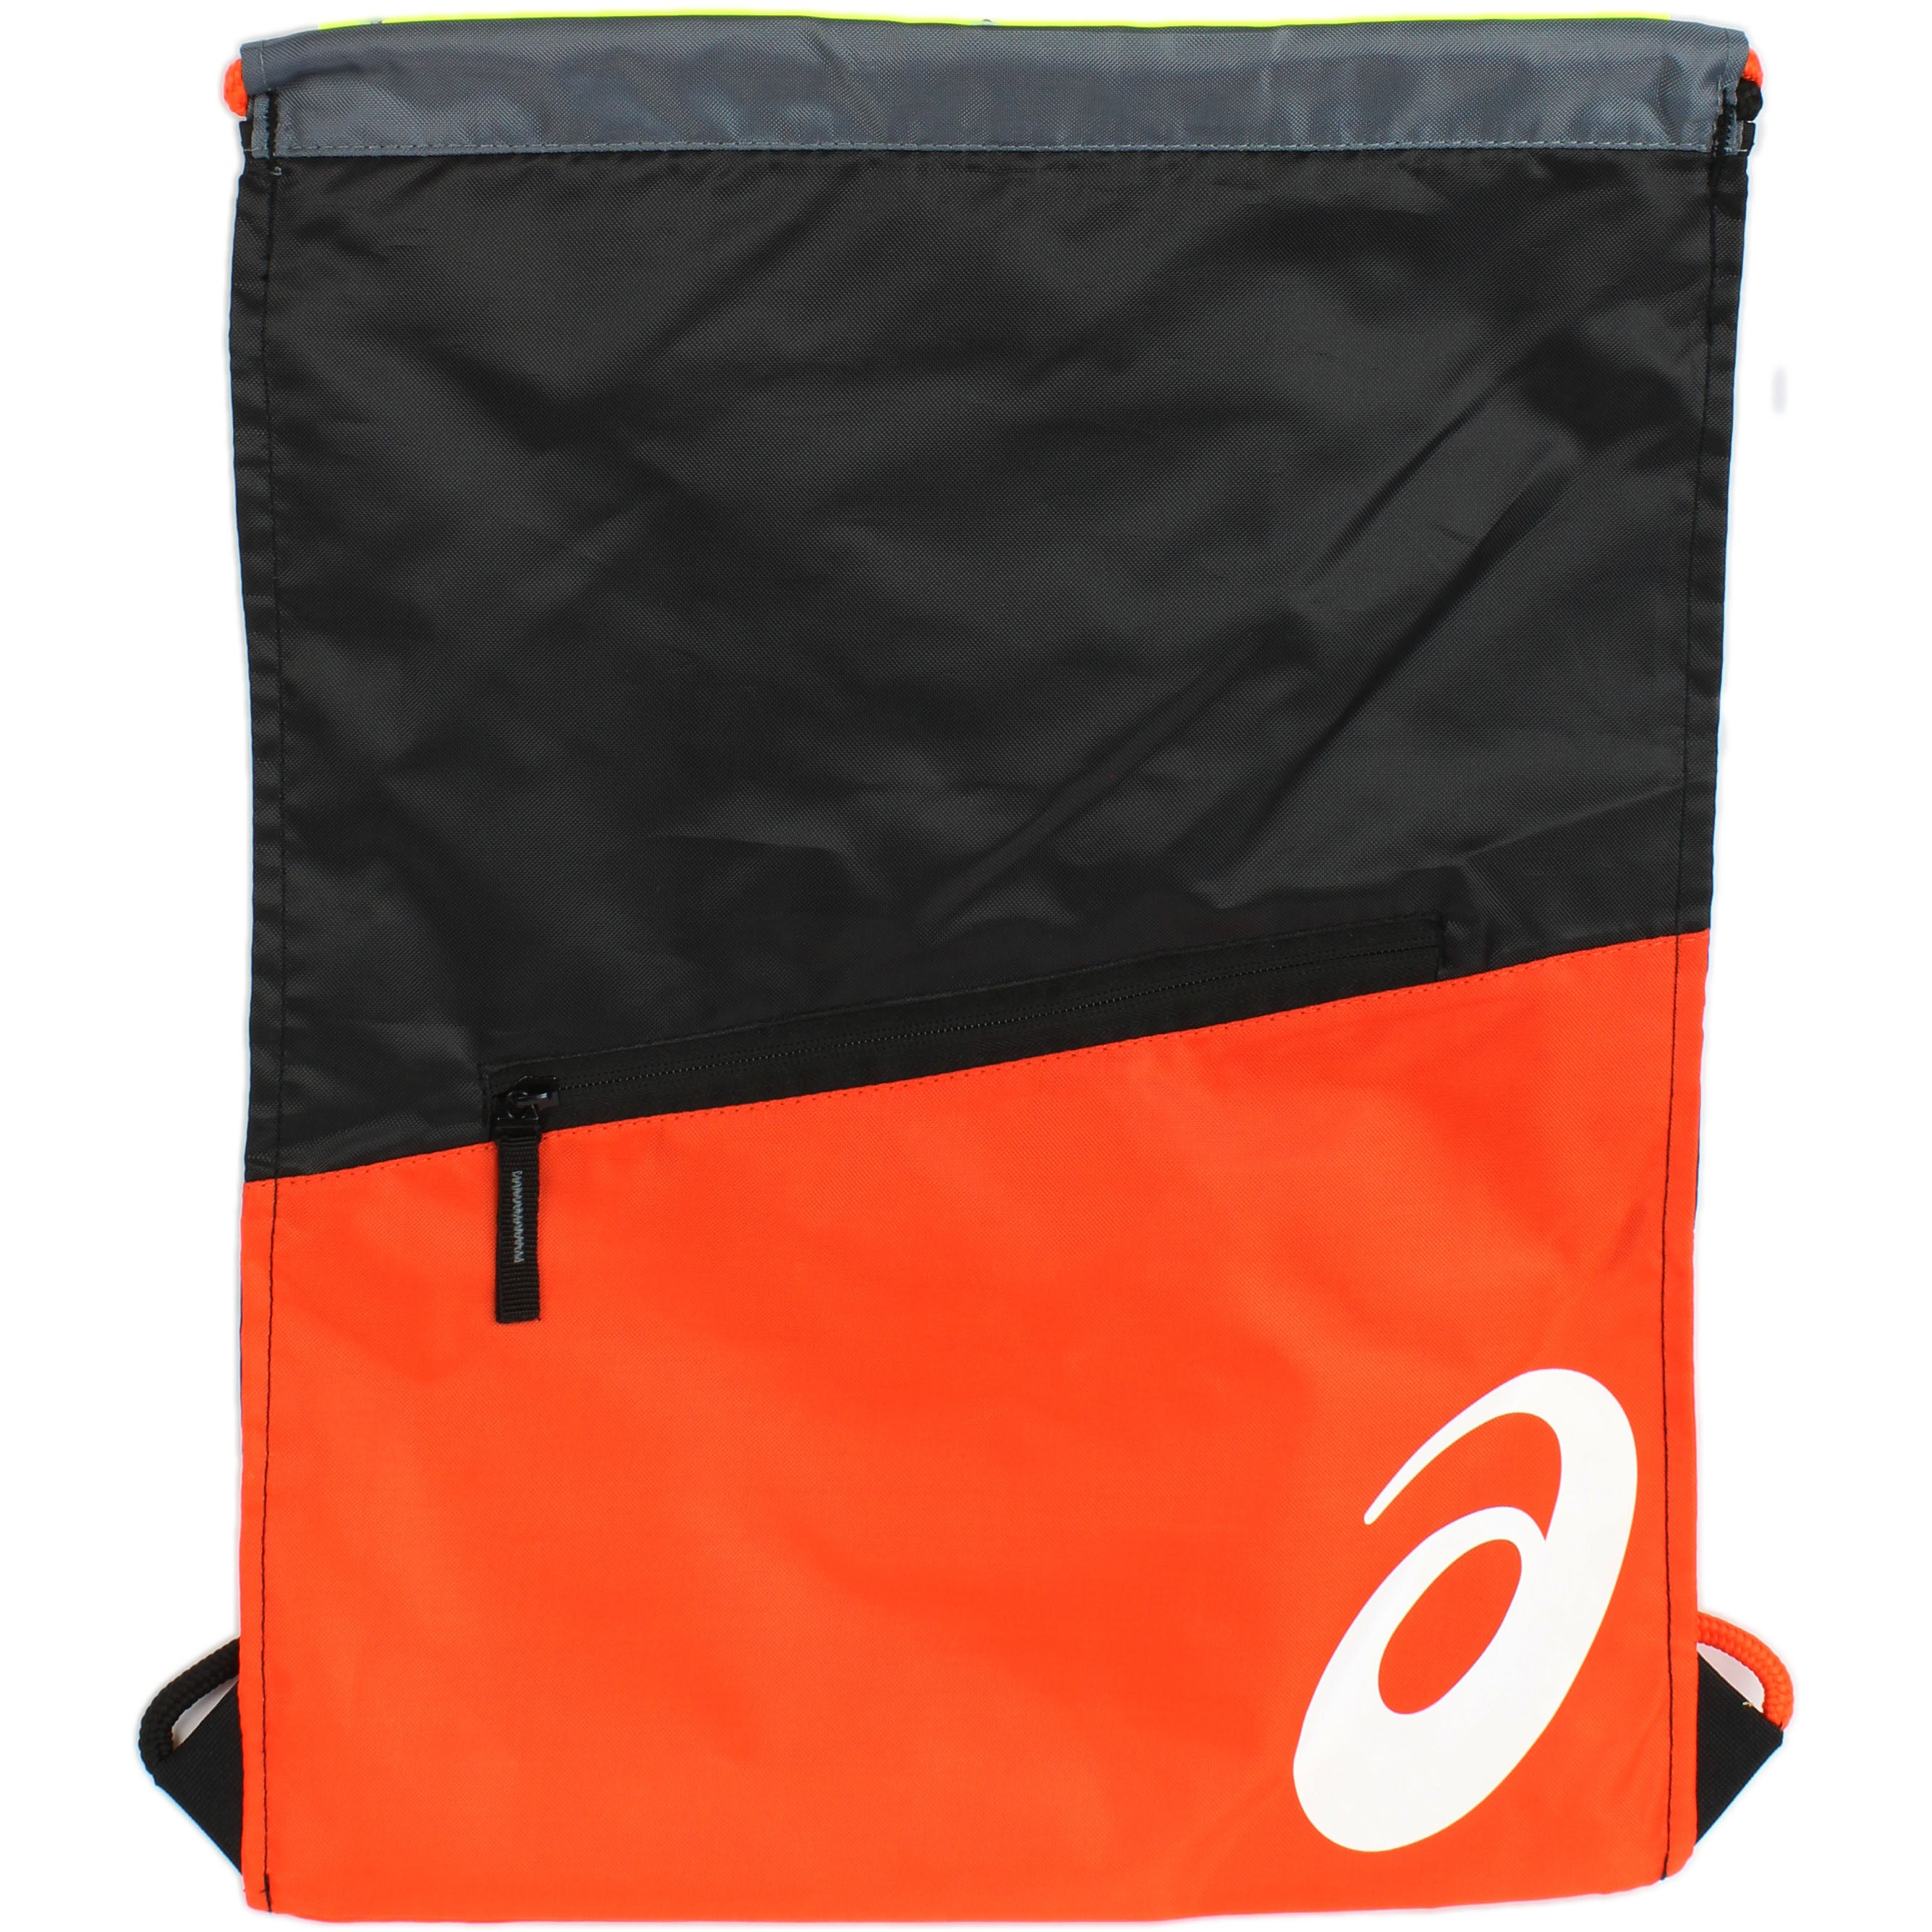 1aca3159ea90 ASICS TM Cinch II Bag Black Orange - Mens 889436665874